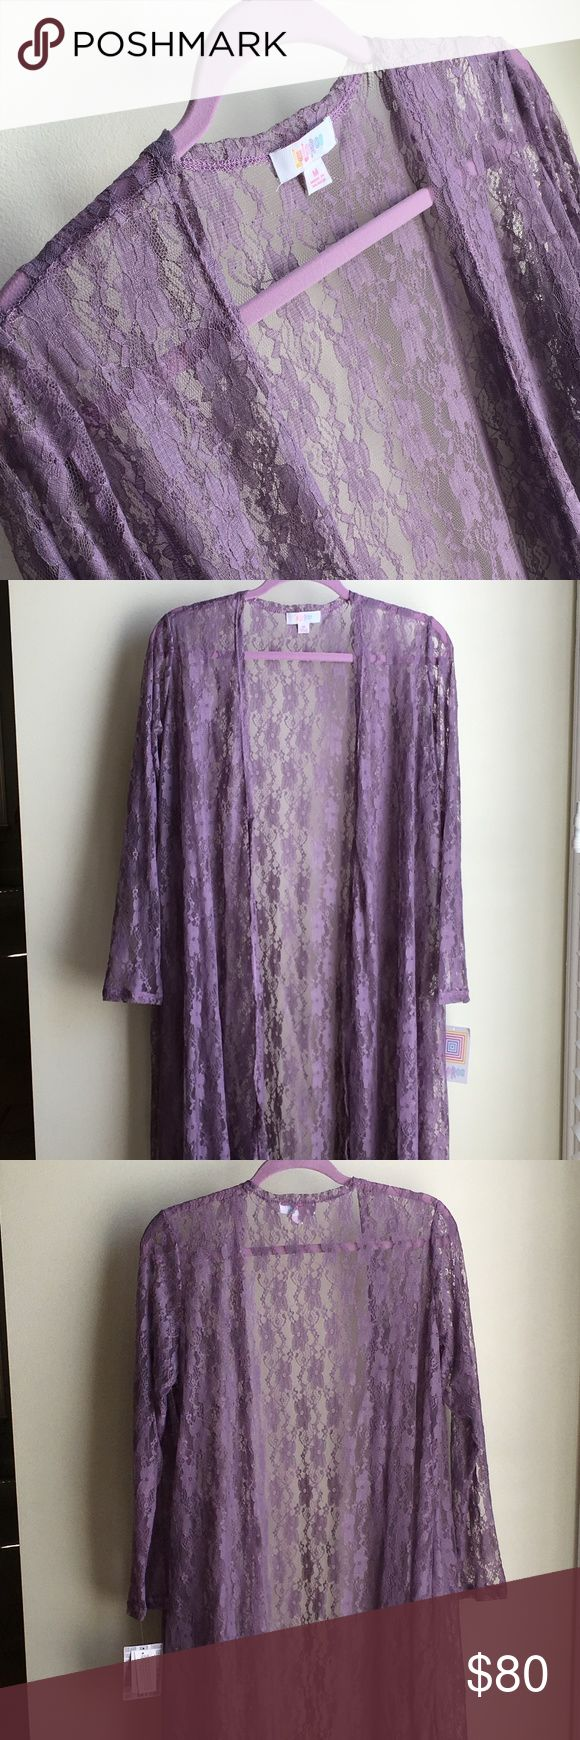 NWT LuLaRoe Lavender Purple Lace Sarah - Unicorn M Just beautiful! And, now a unicorn. NWT LuLaRoe Lavender Muted Purple Lace Sarah in size medium Gorgeous lilac, lavender, or pale muted purple shade. Elegant lace. No pockets. Runs true to size to a little generous with some stretch. Perfect year-round, but especially in Spring & Summer Quite versatile as you can dress it up or wear it over a t-shirt with jeans or even shorts. Made in Mexico.  90% Nylon 10% Spandex I am not a consultant :)…